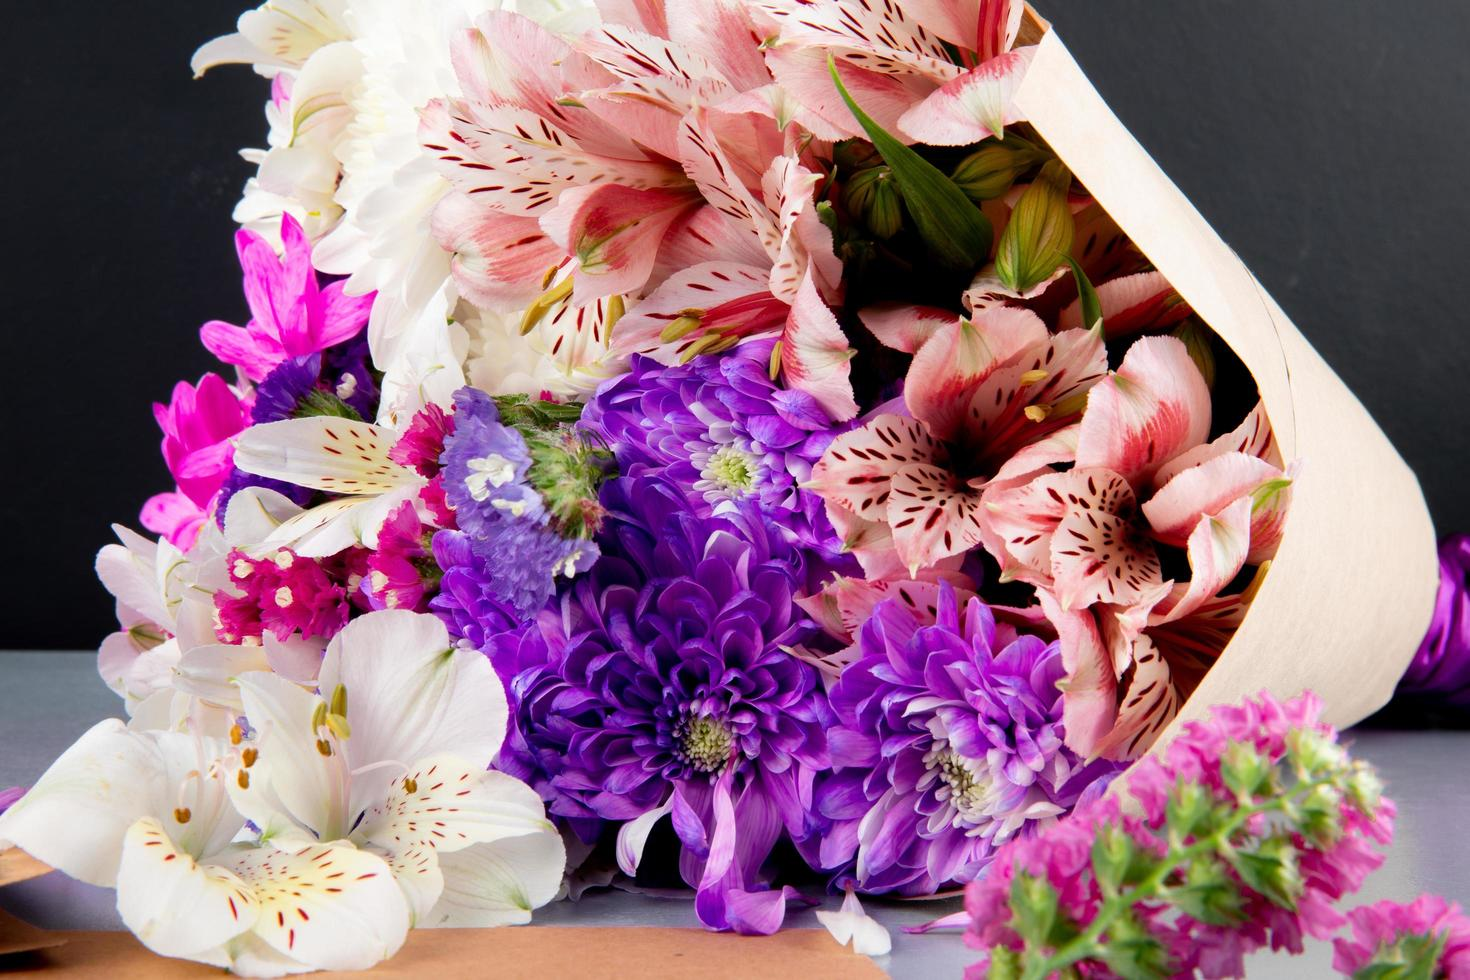 Top view of a bouquet of flowers photo